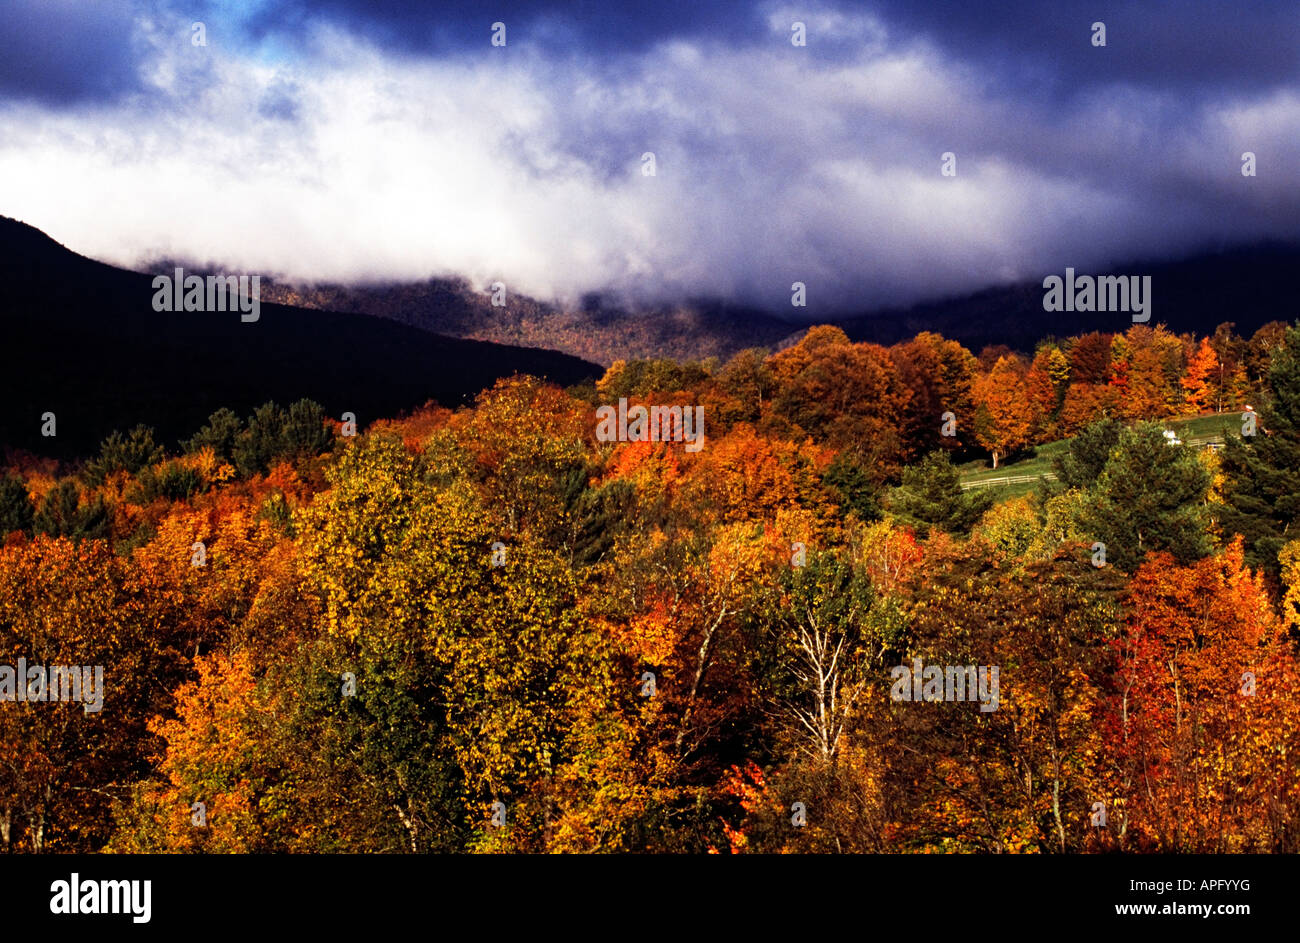 View of autumn colored trees in Stowe, Vermont, New England, USA - Stock Image